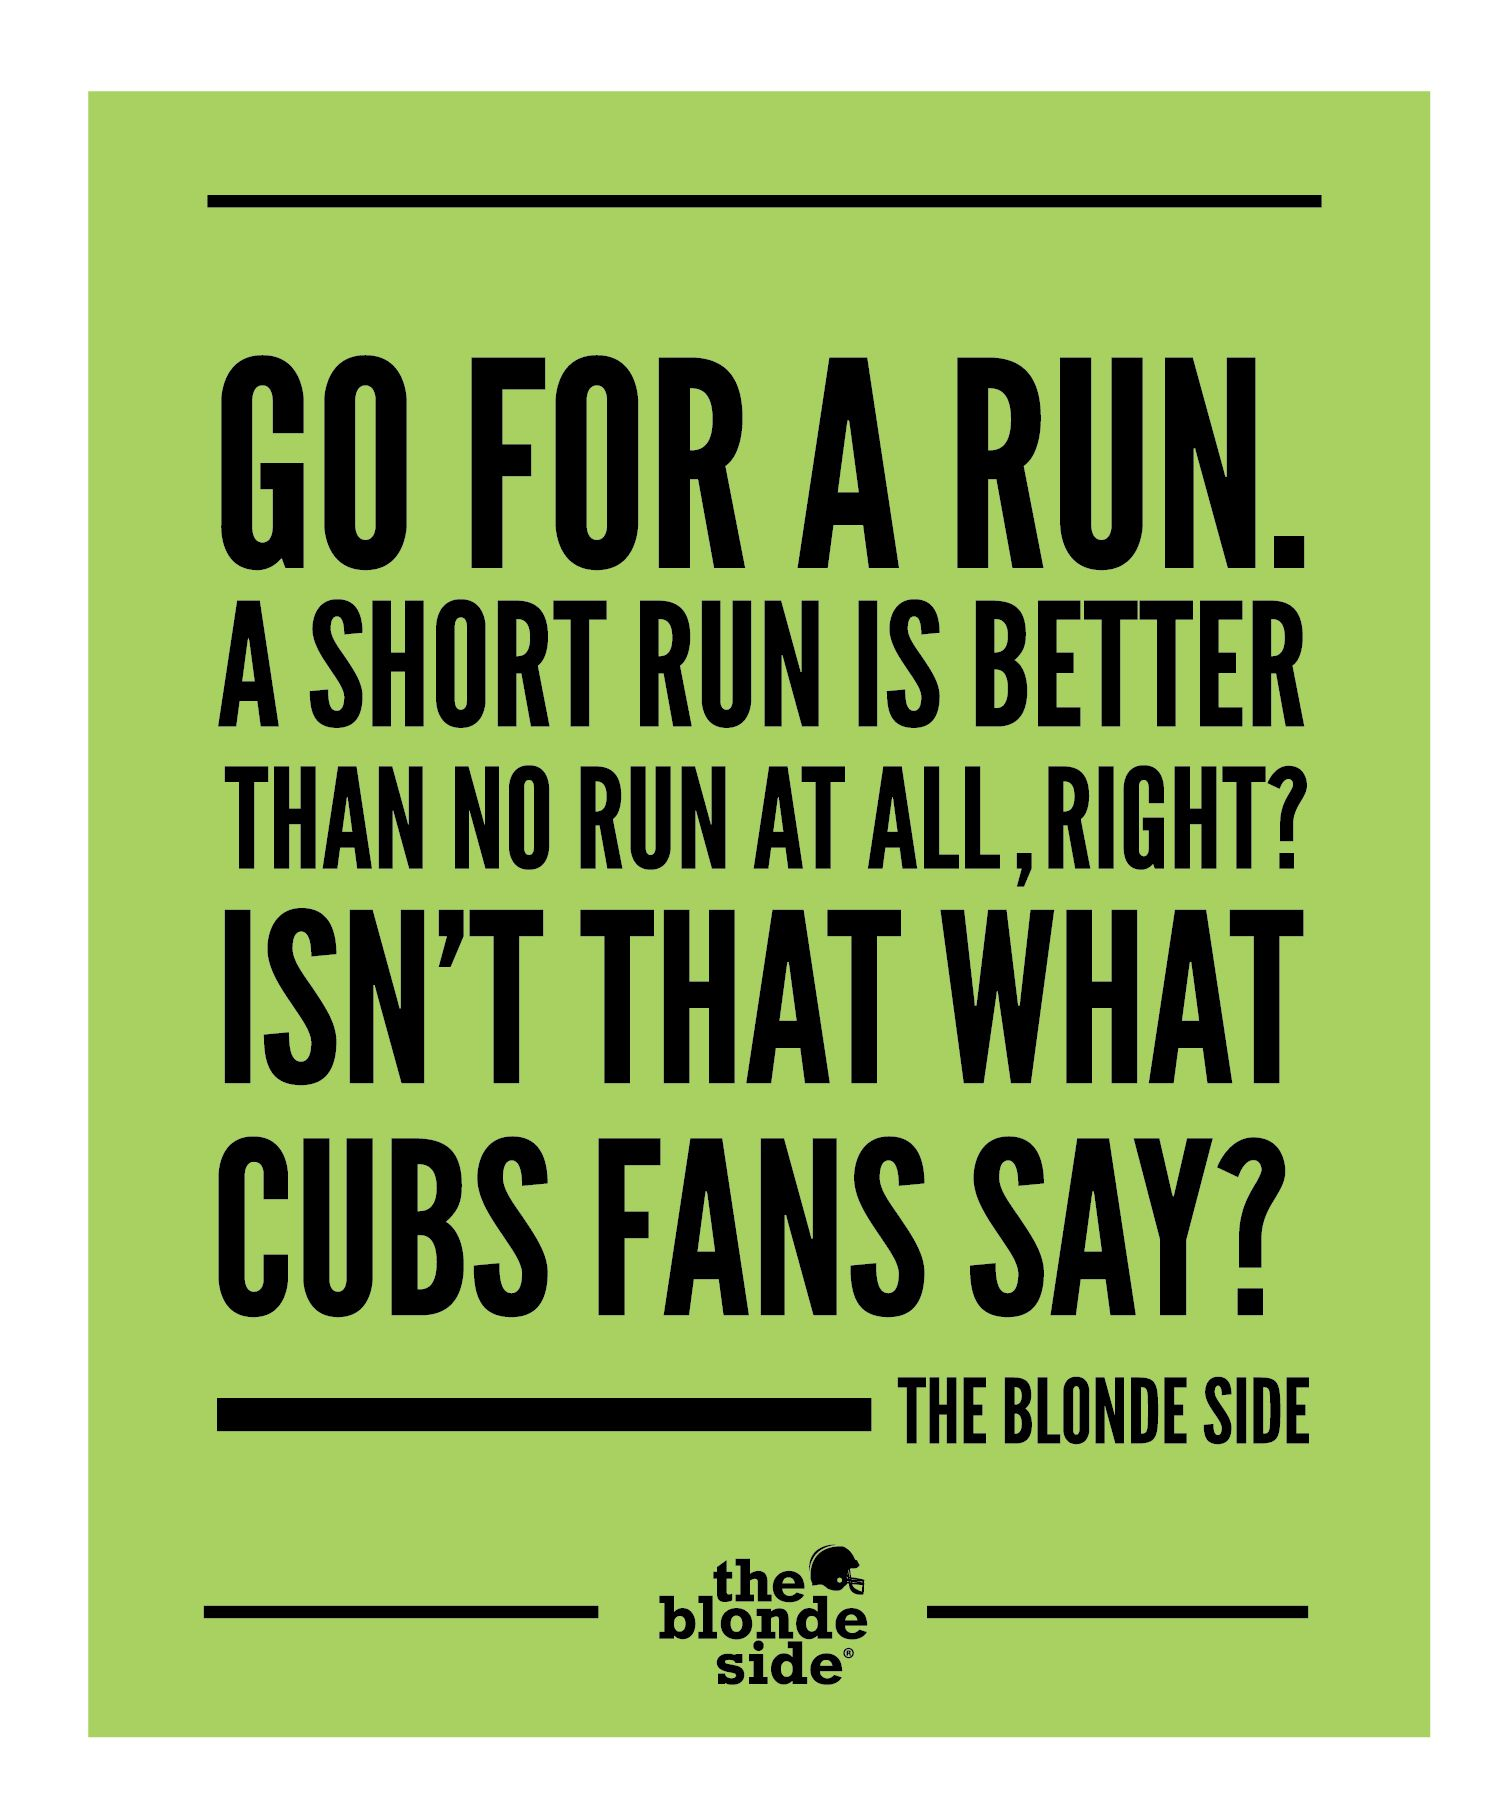 motivation, fitness, Cubs fans, Go for a run, sports